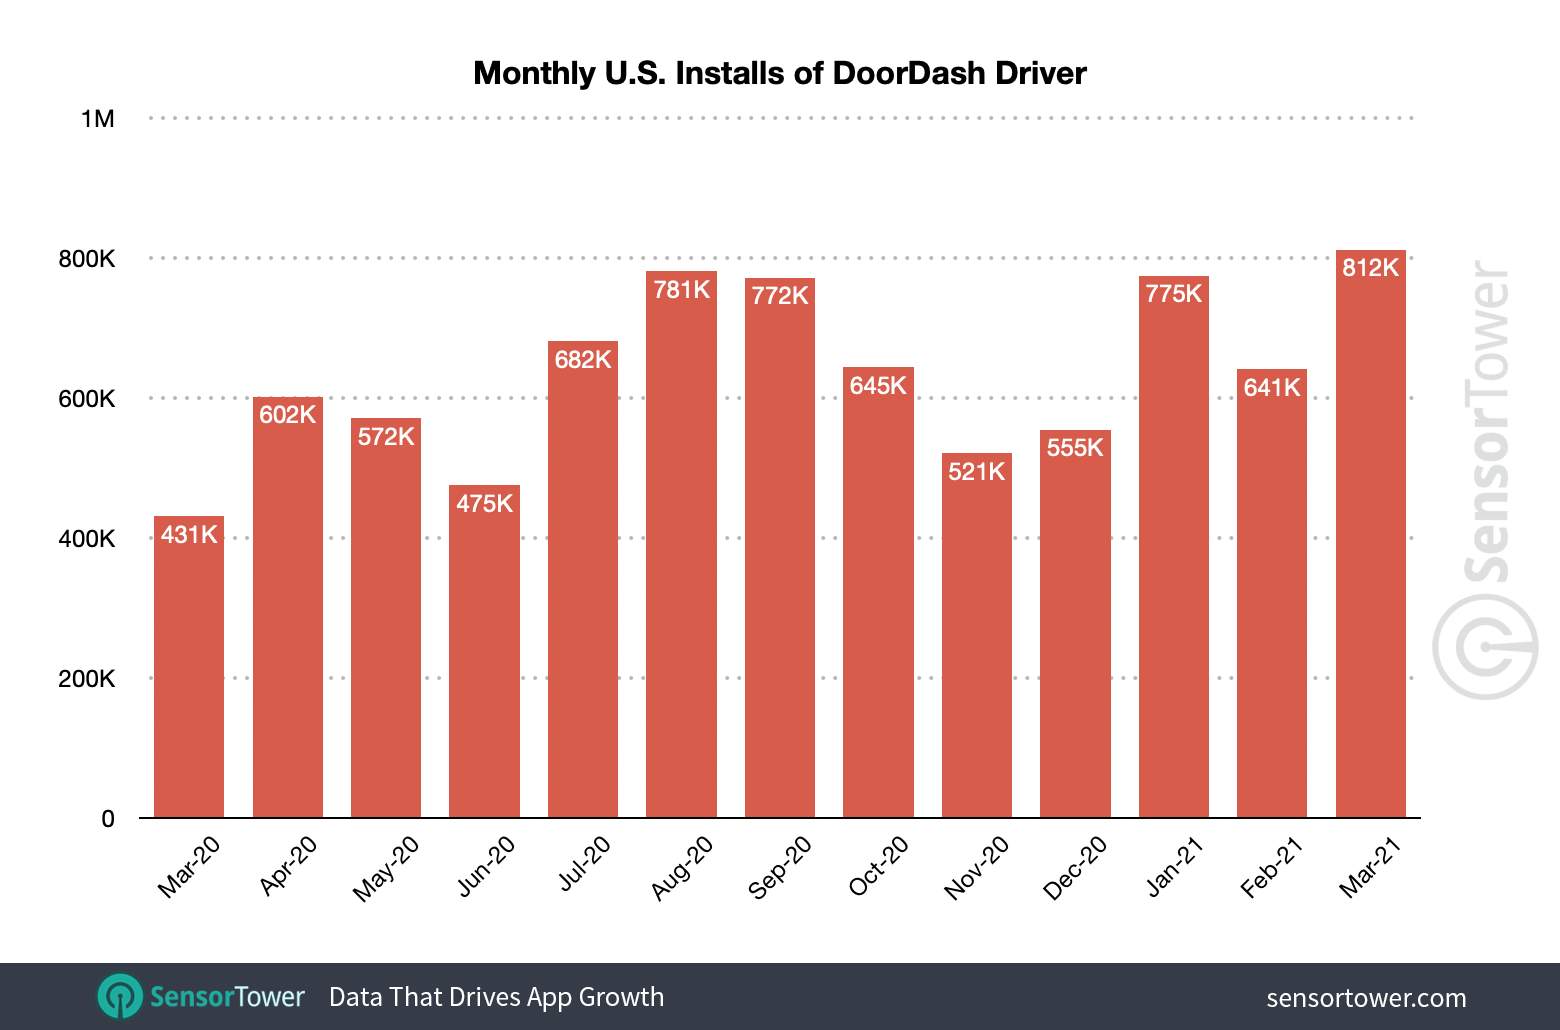 DoorDash Driver had its best month of installs in March 2021.